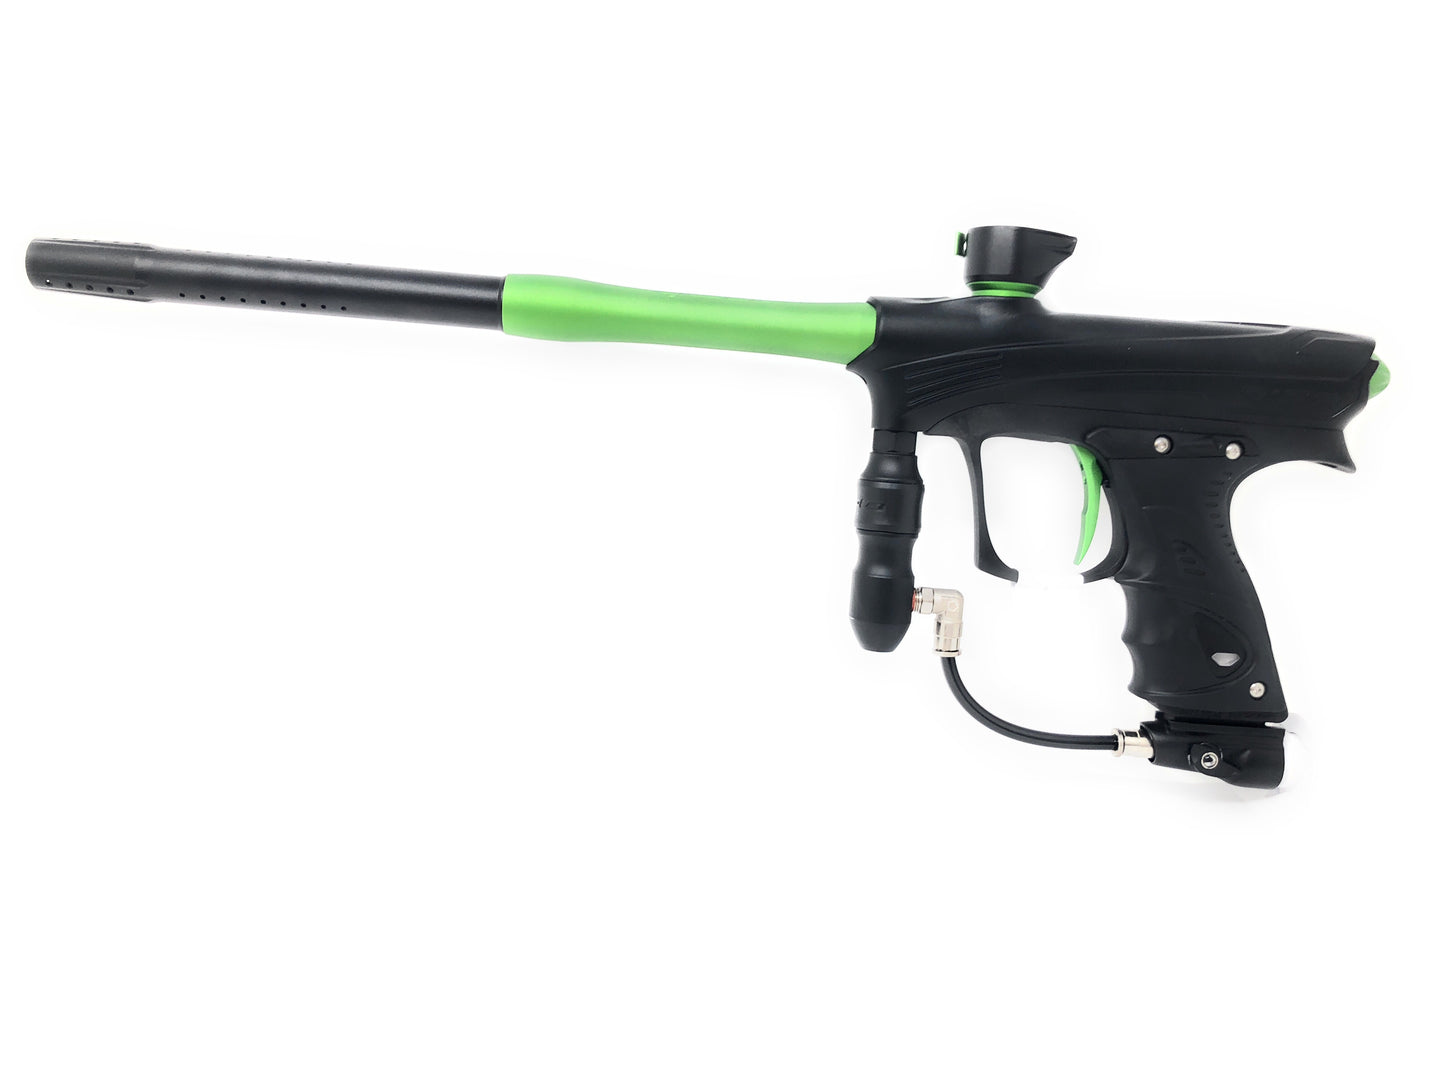 Photos of Dye Rize Maxxed Paintball Marker- Black/Green. Photo taken by drpaintball.com